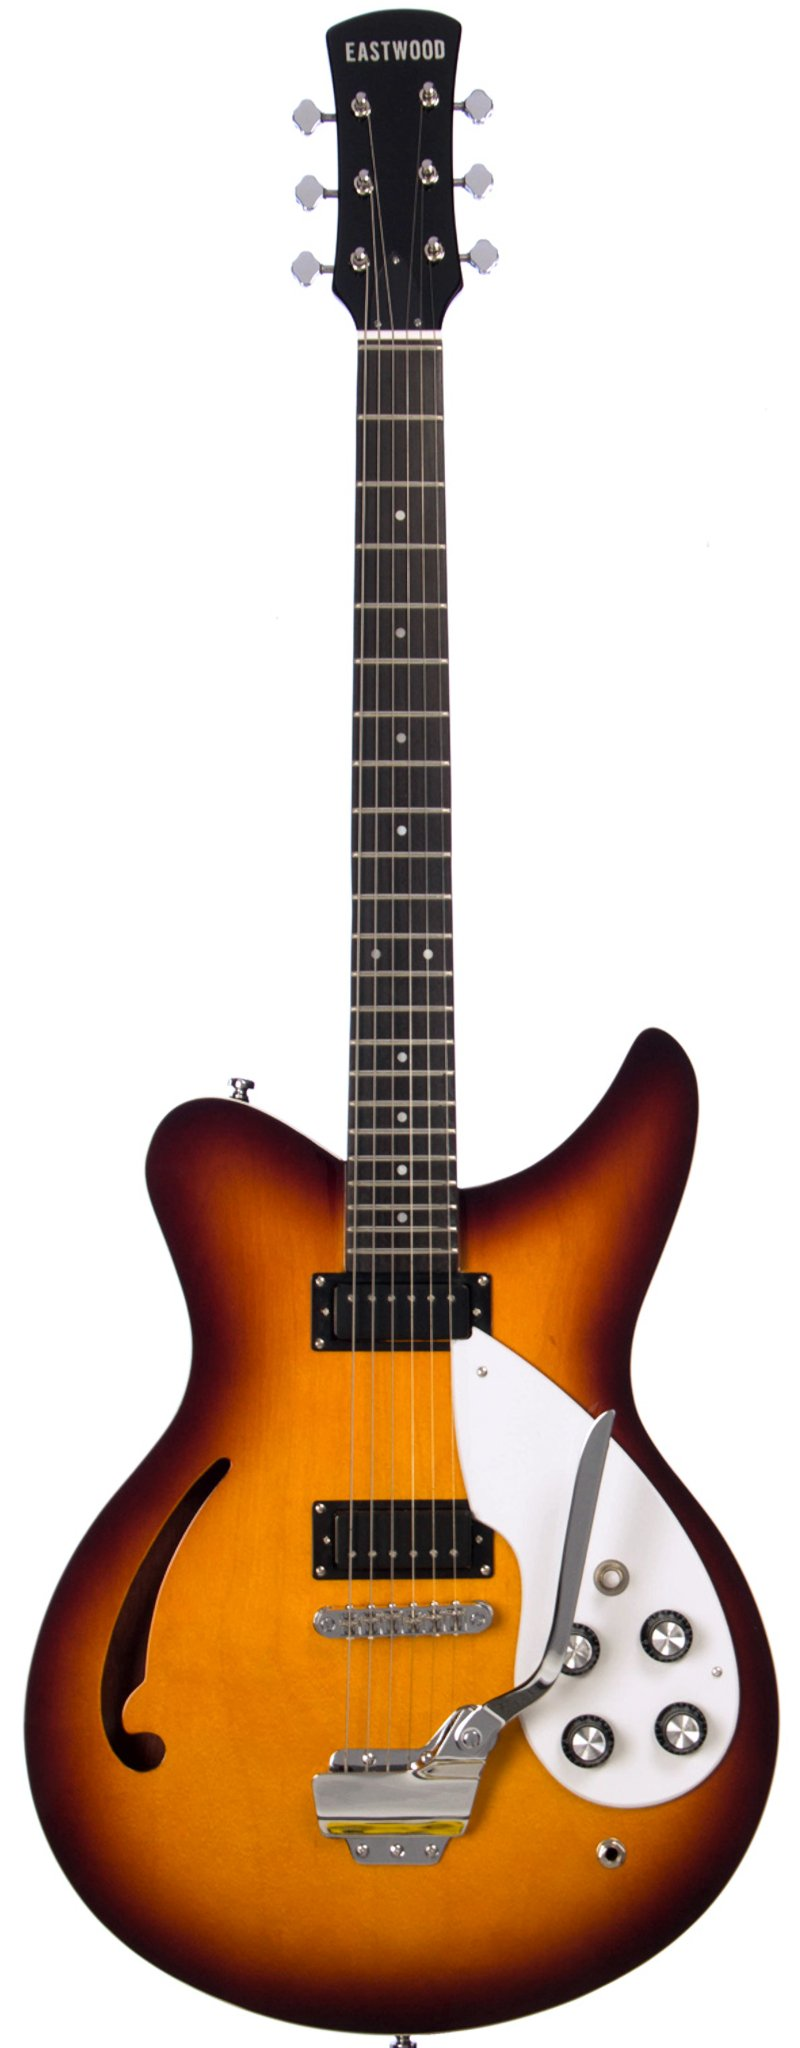 Eastwood Guitars Eastwood SA-15 Sunburst Full Front